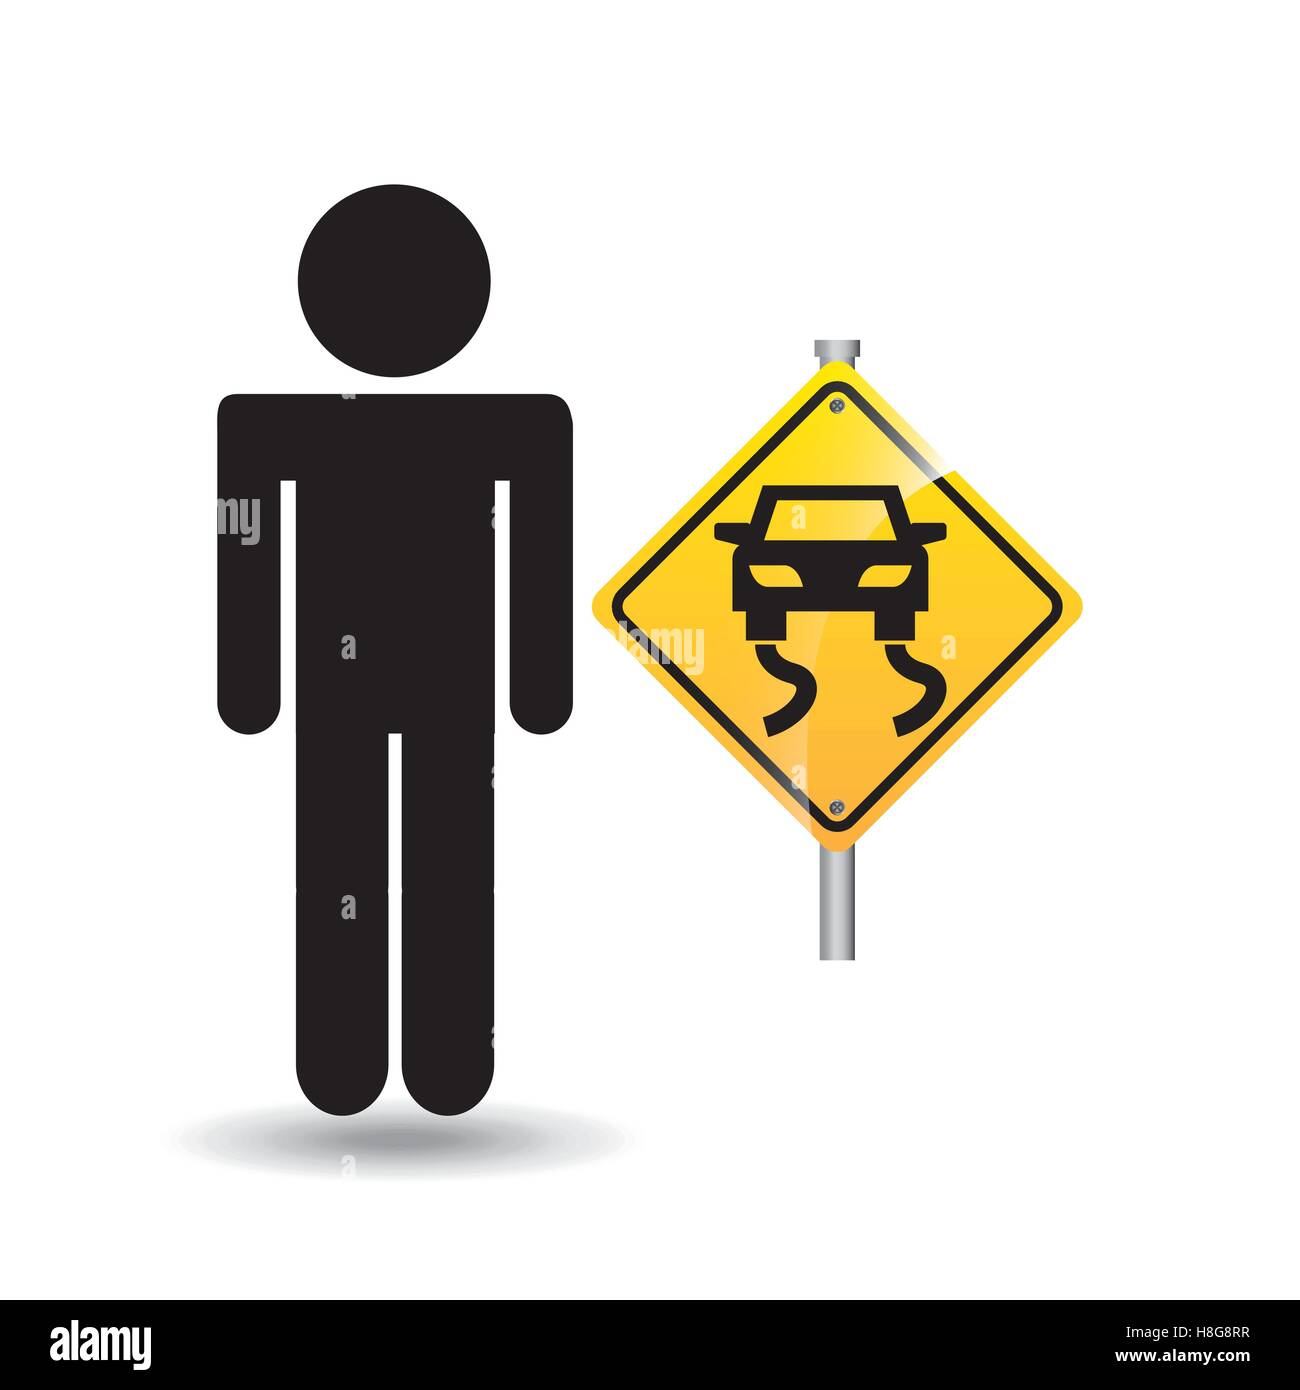 road sign slippery silhouette man vector illustration eps 10 - Stock Image